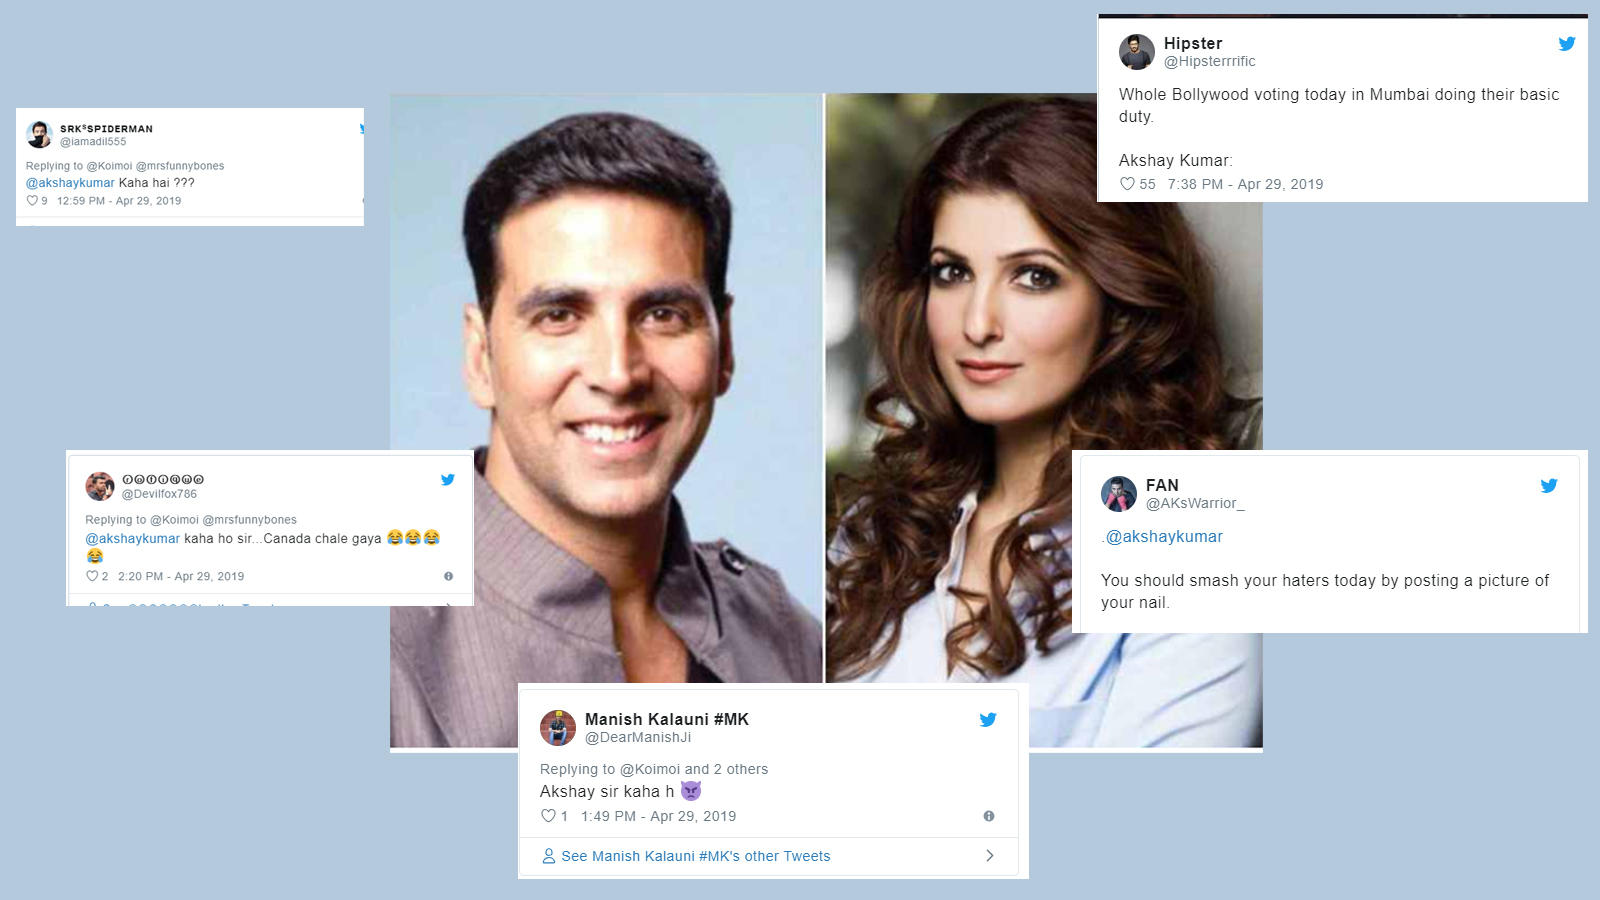 Trolls ask 'Where is Akshay Kumar?' after Twinkle Khanna casts her vote